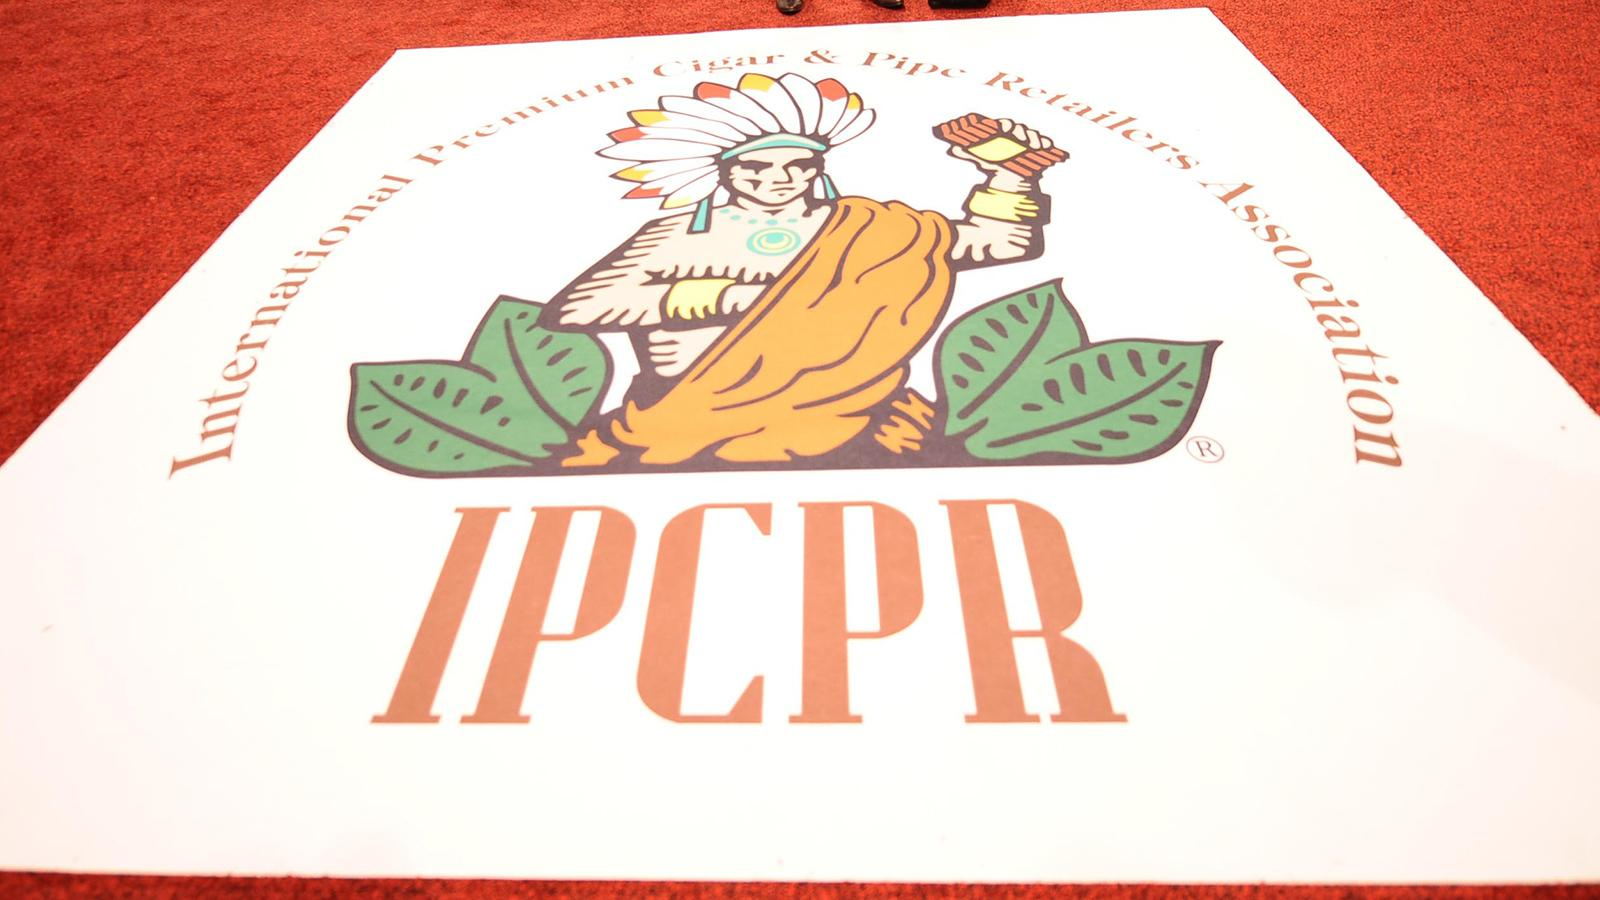 IPCPR Announces Changes To Executive Management